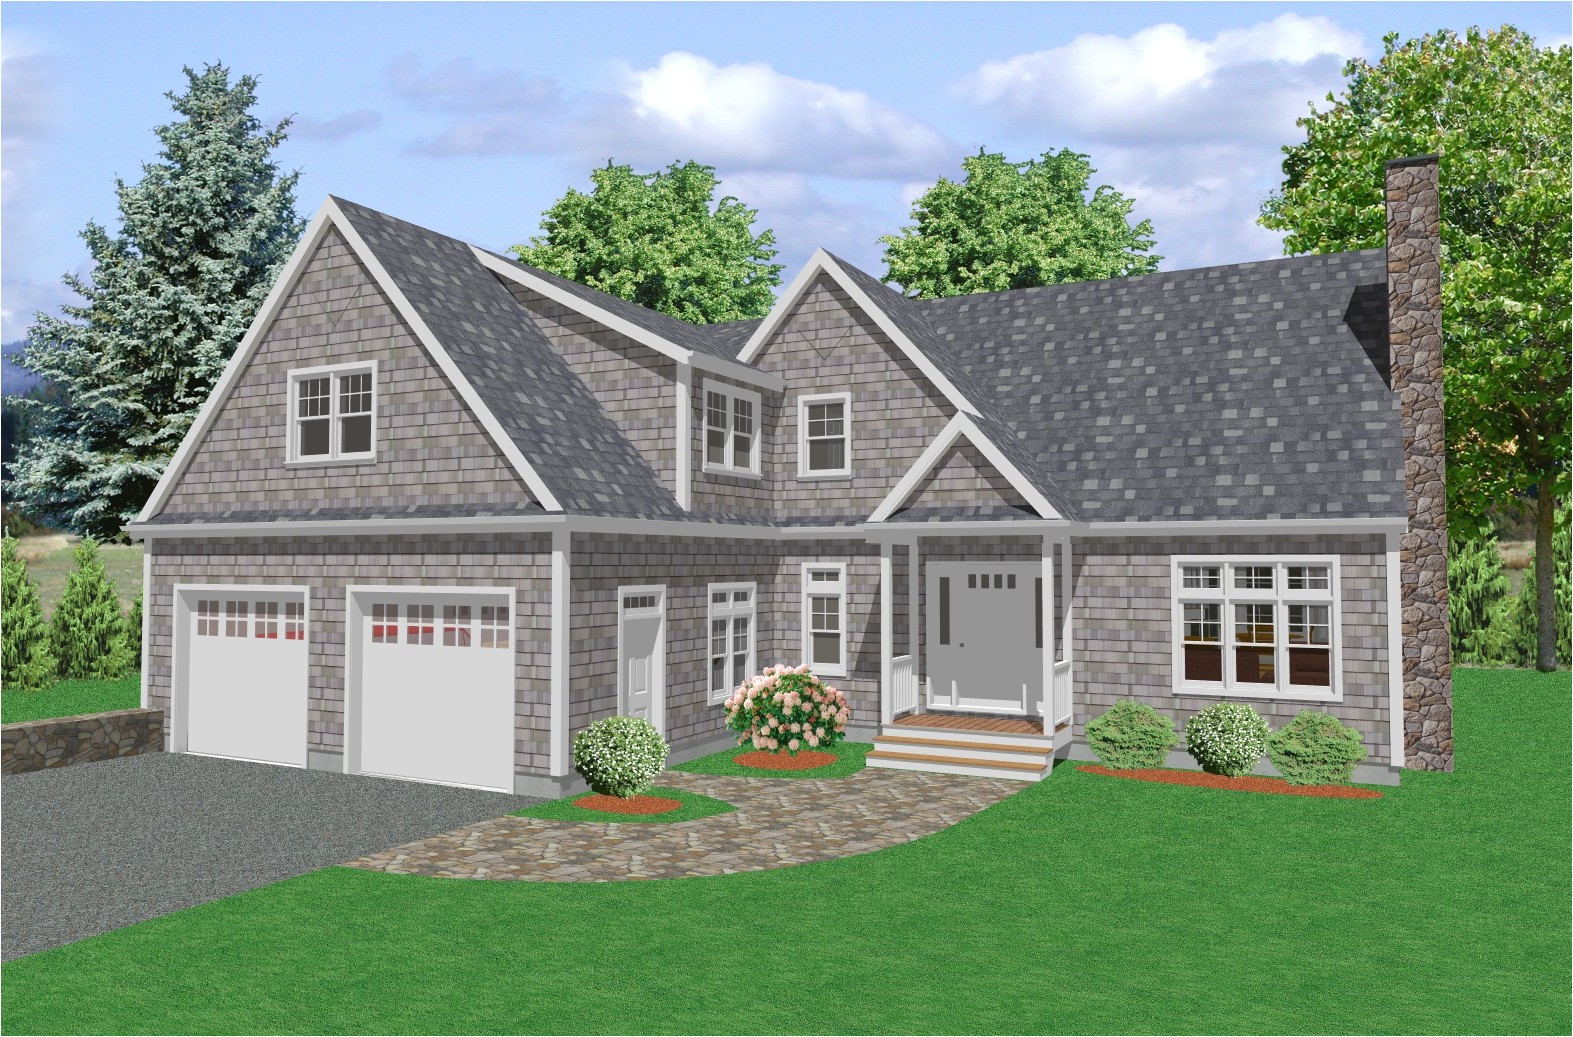 Cape Cod Homes Plans Nice Cape Cod Home Plans 9 Country Cape Cod House Plans